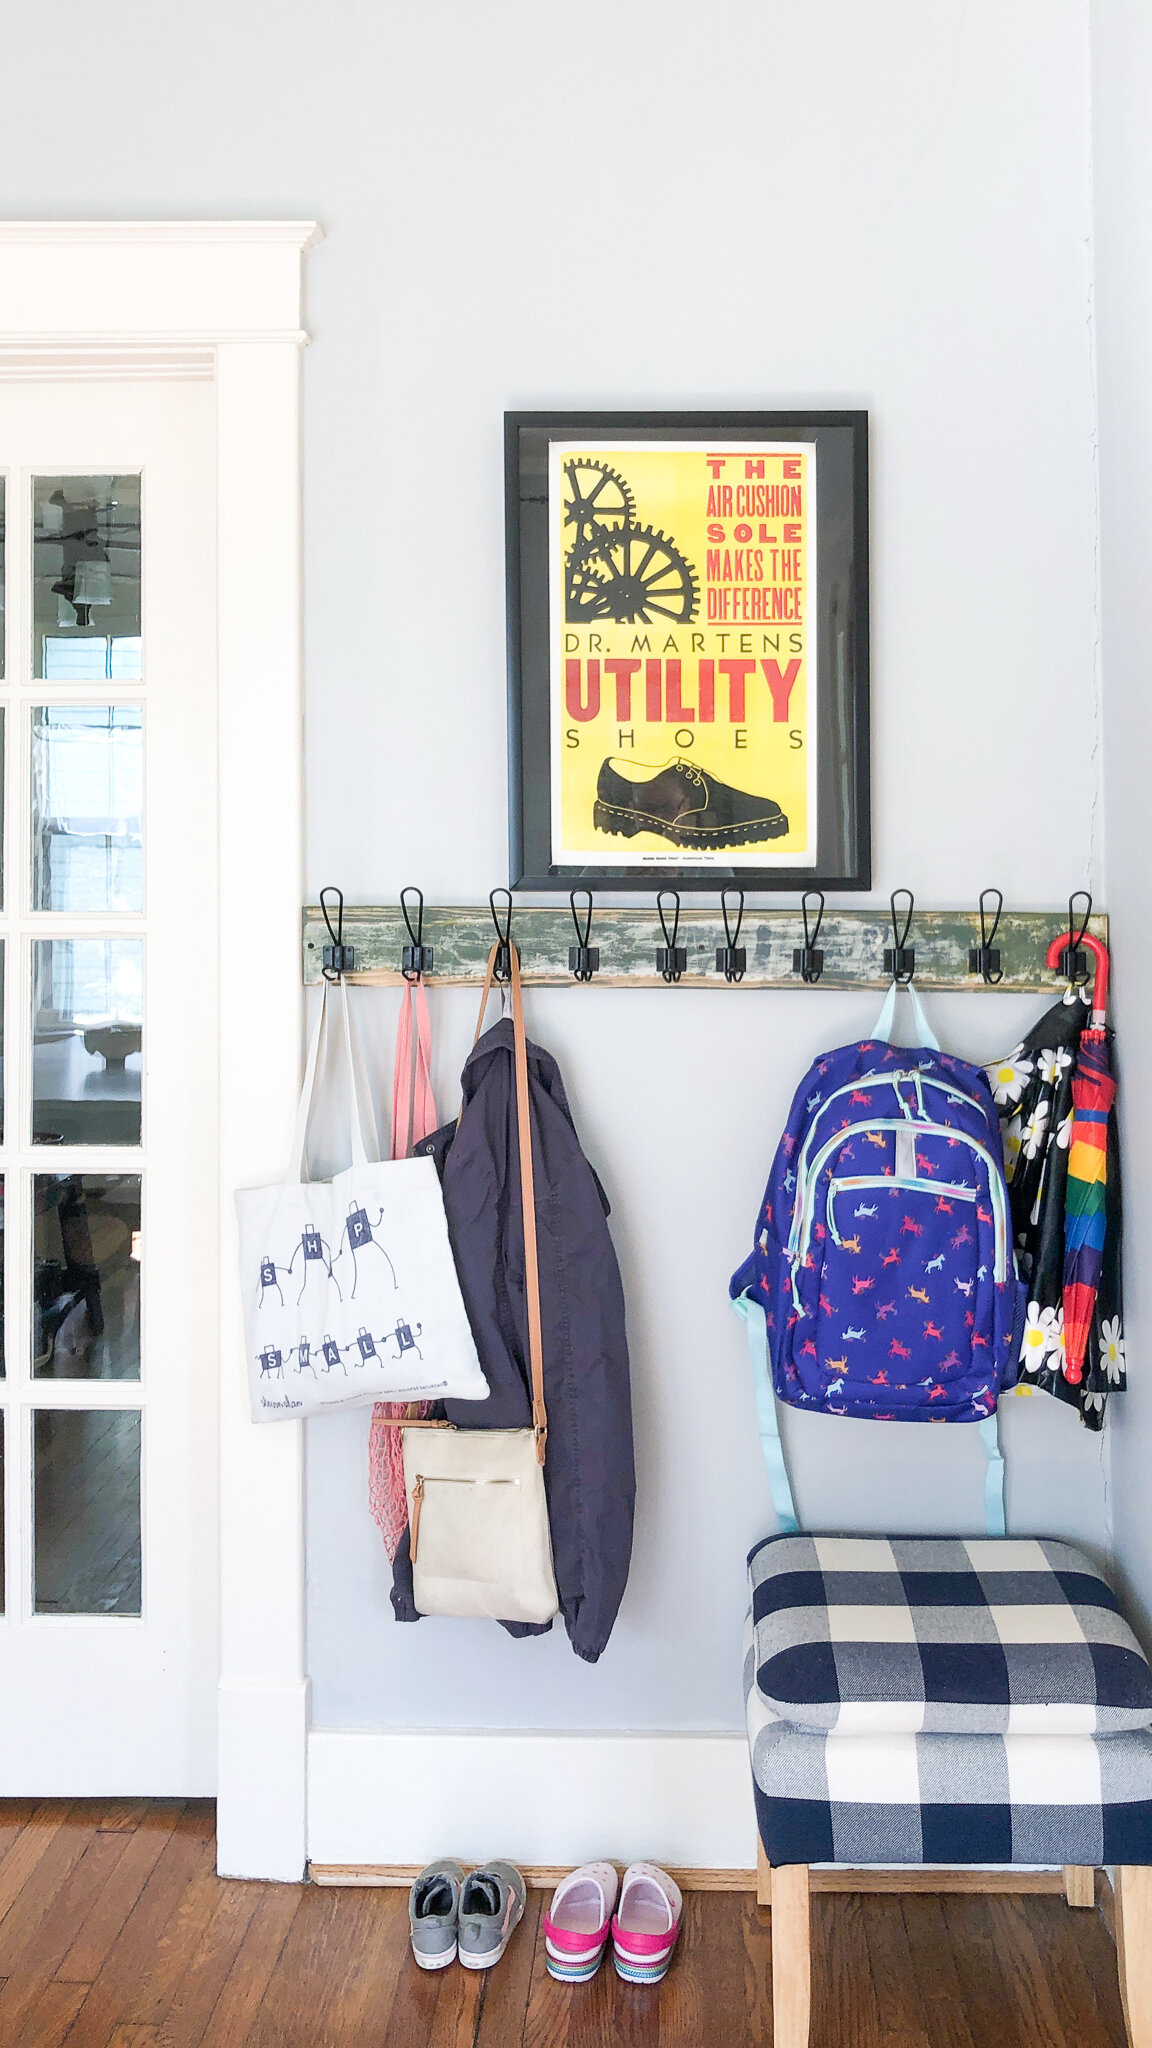 Easy Home Updates for Fall - We added a mini-mudroom by our front door to store our outerwear for the coming chilly weather. #diyhome #mudroom #storageideas #organizationdiy #bungalowstyle #schoolhouseliving